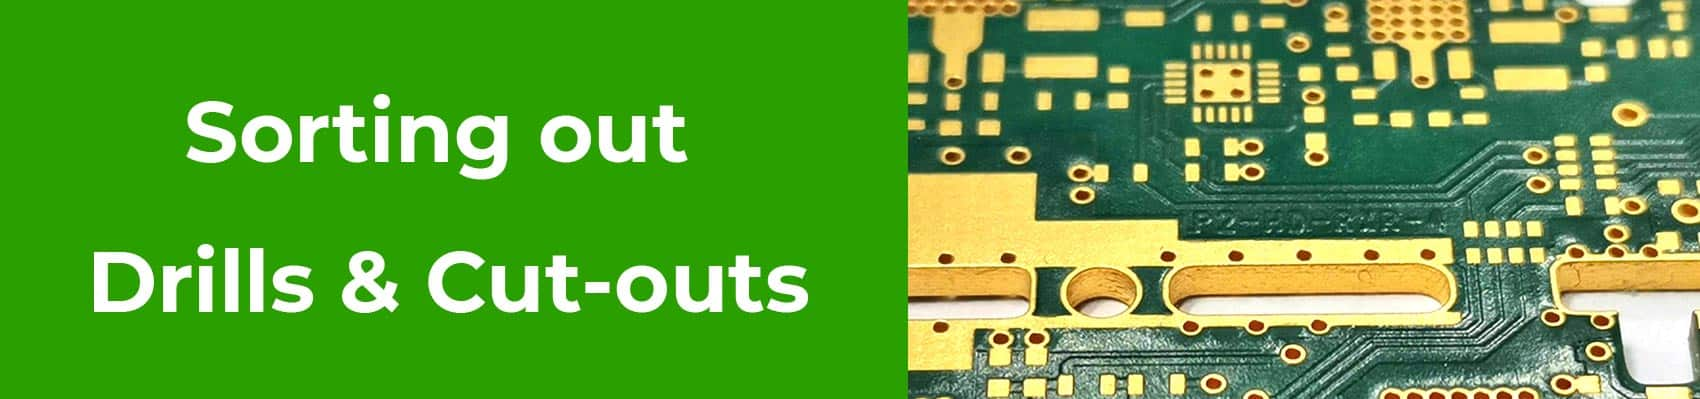 Sorting-out-Drills-and-Cut-outs-Blog-Banner